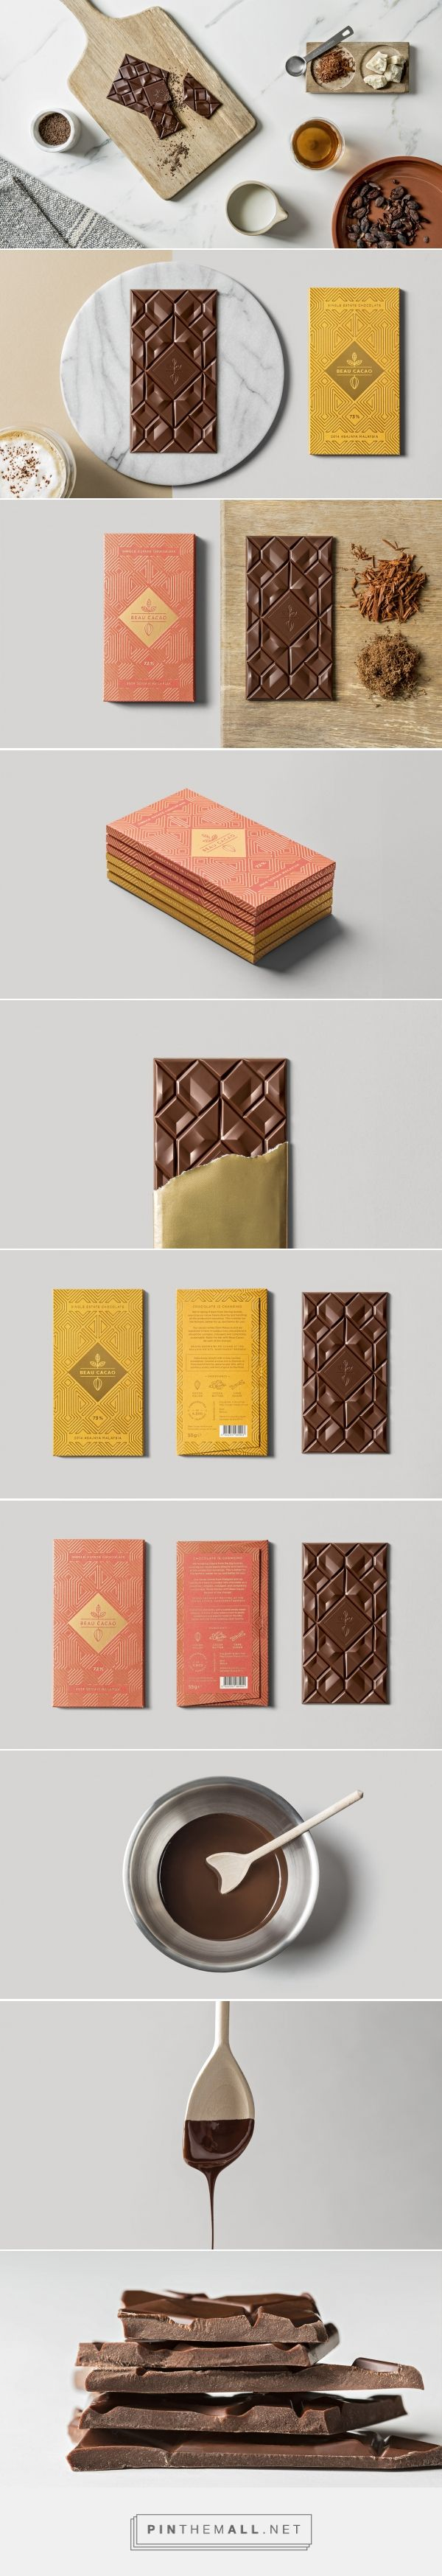 Beau Cacao - Packaging of the World - Creative Package Design Gallery - http://www.packagingoftheworld.com/2017/01/beau-cacao.html